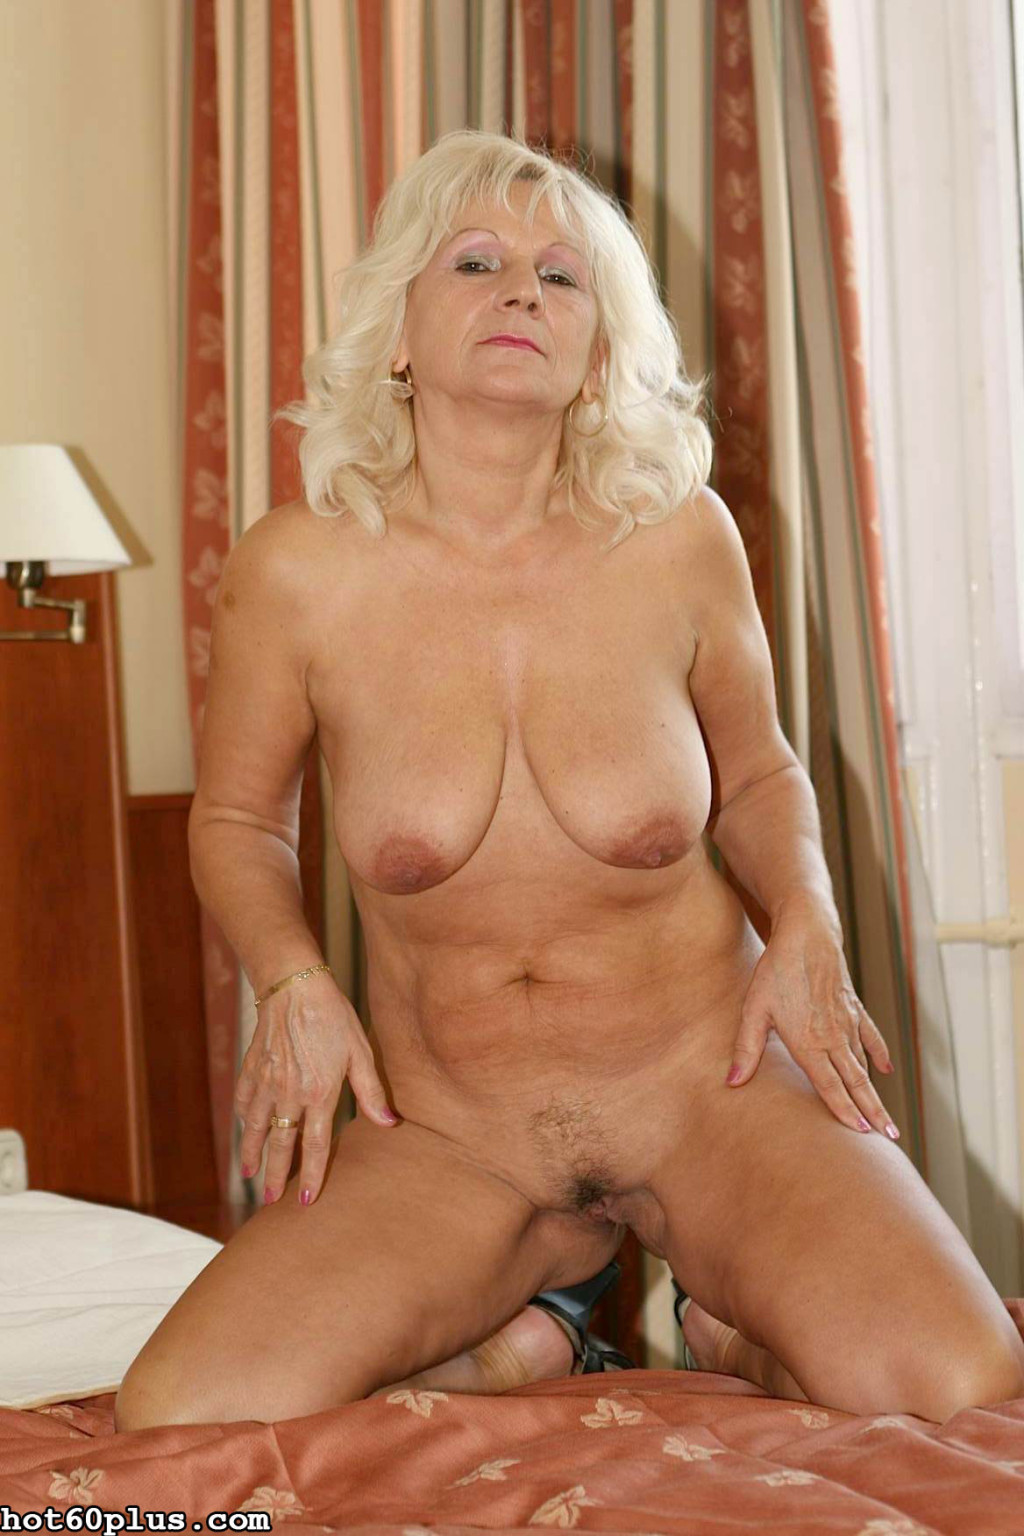 Rather Nasty sexy mature women